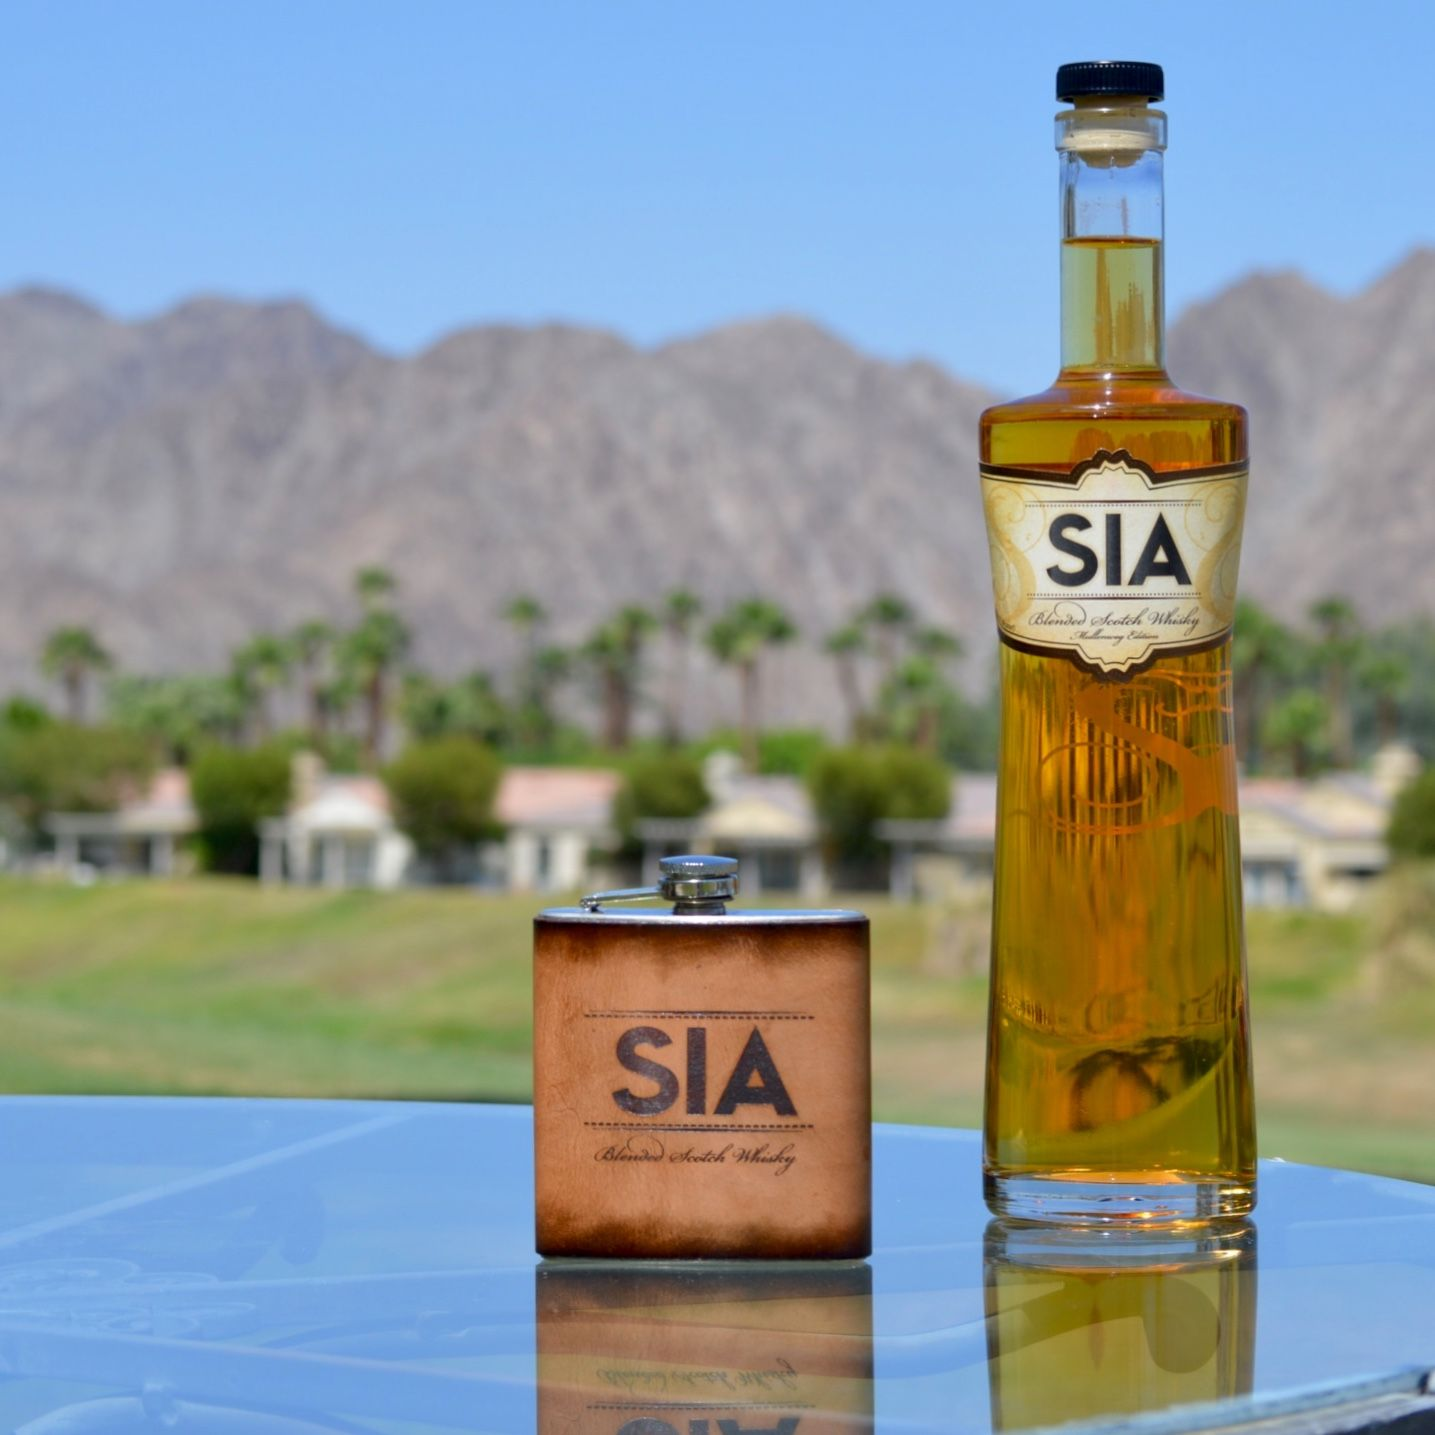 Golf. #PalmSprings. Desert. And SIA Scotch Whisky. That's all you need.